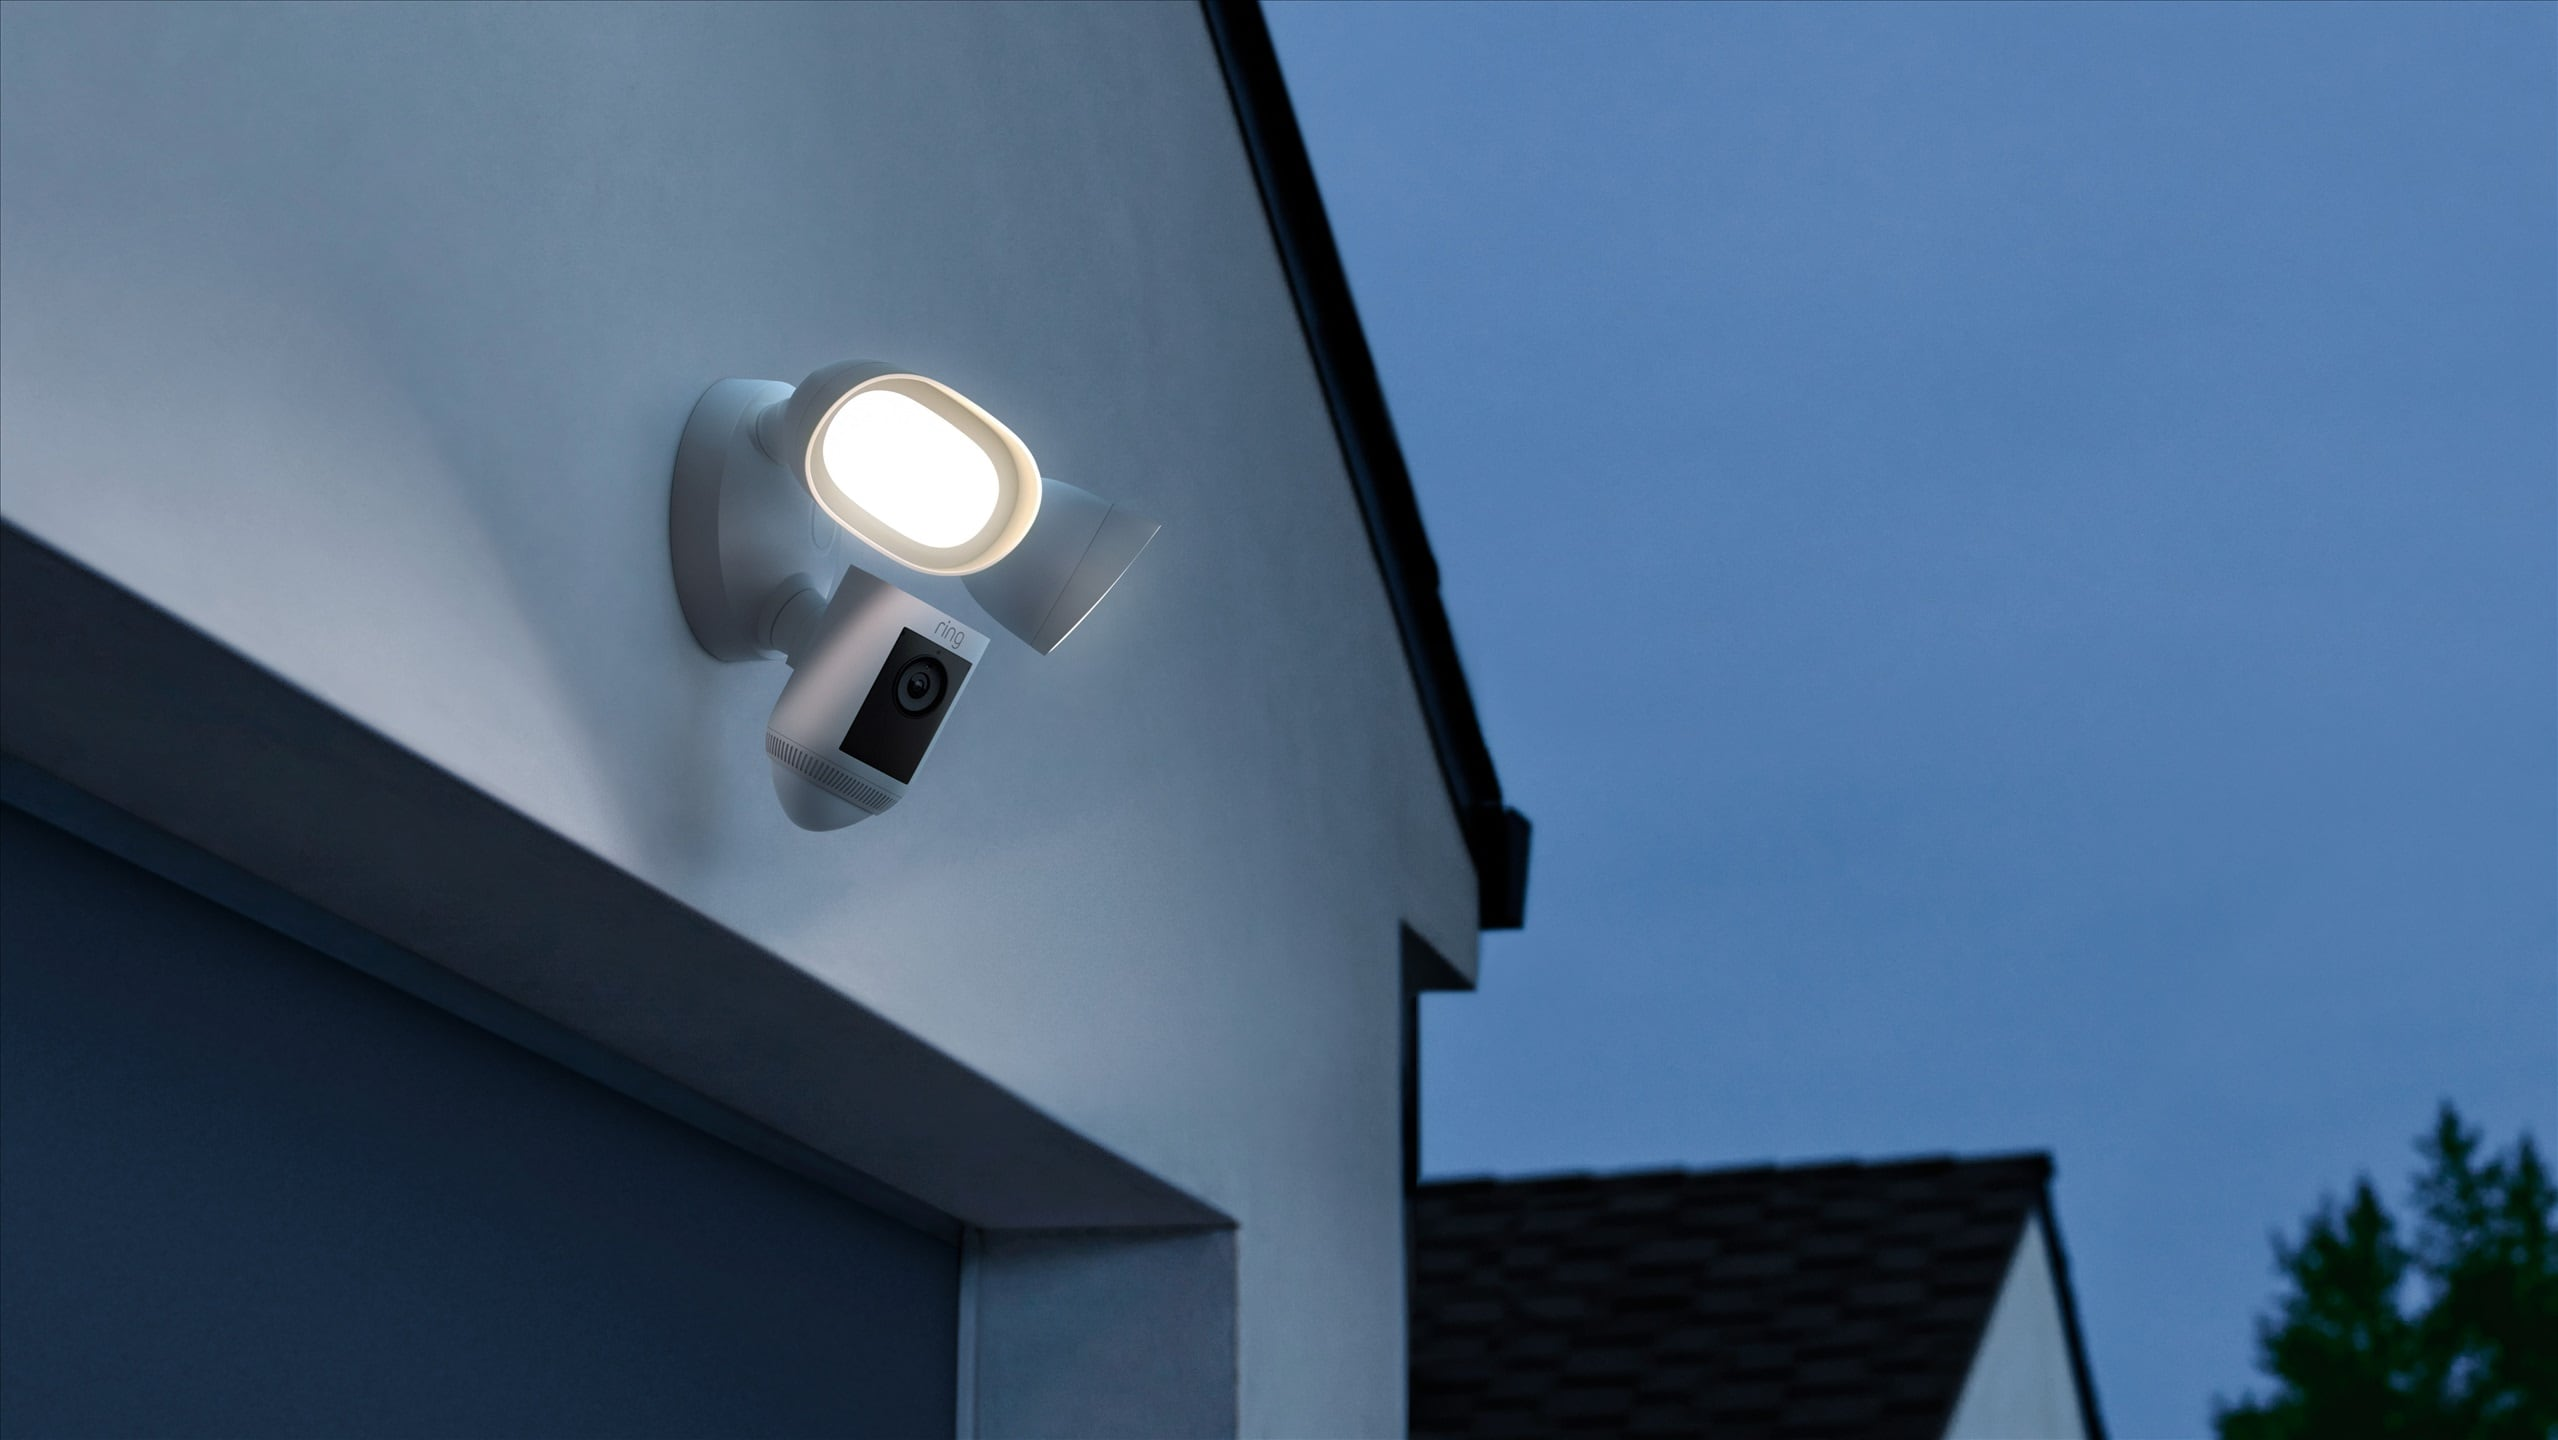 Ring announces their most advanced Floodlight yet, the Floodlight Cam Pro